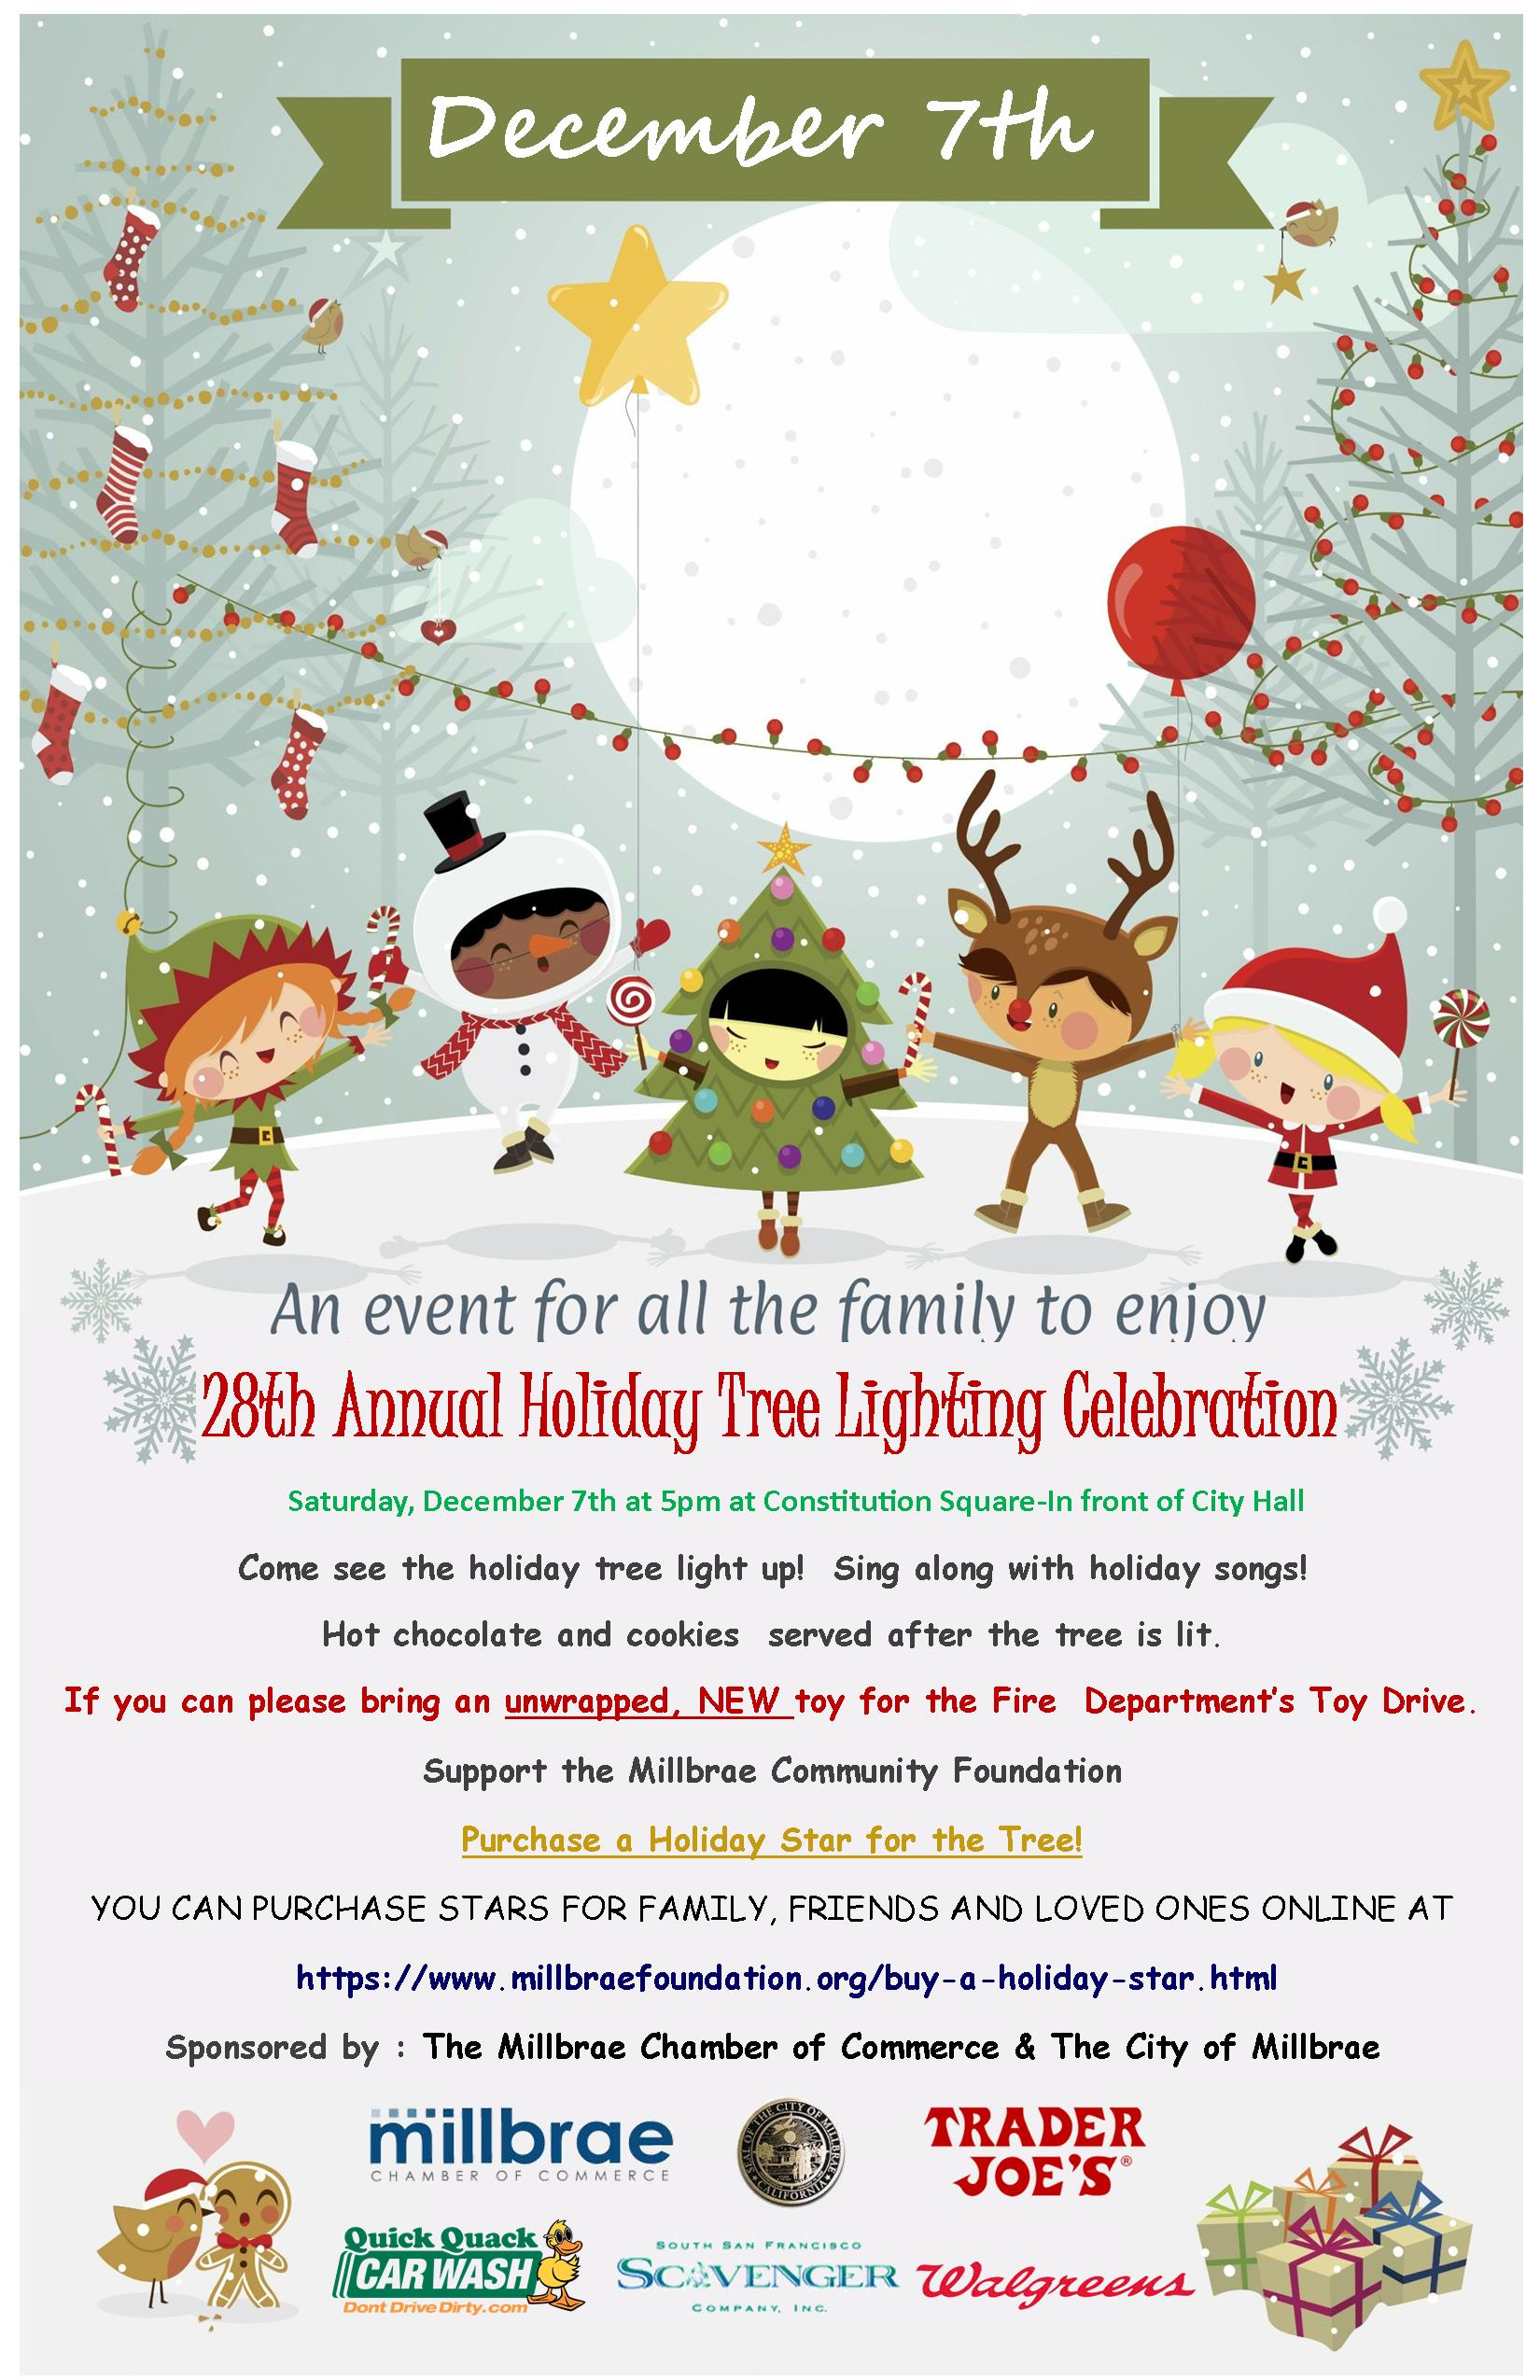 2019 Millbrae Holiday Tree Lighting